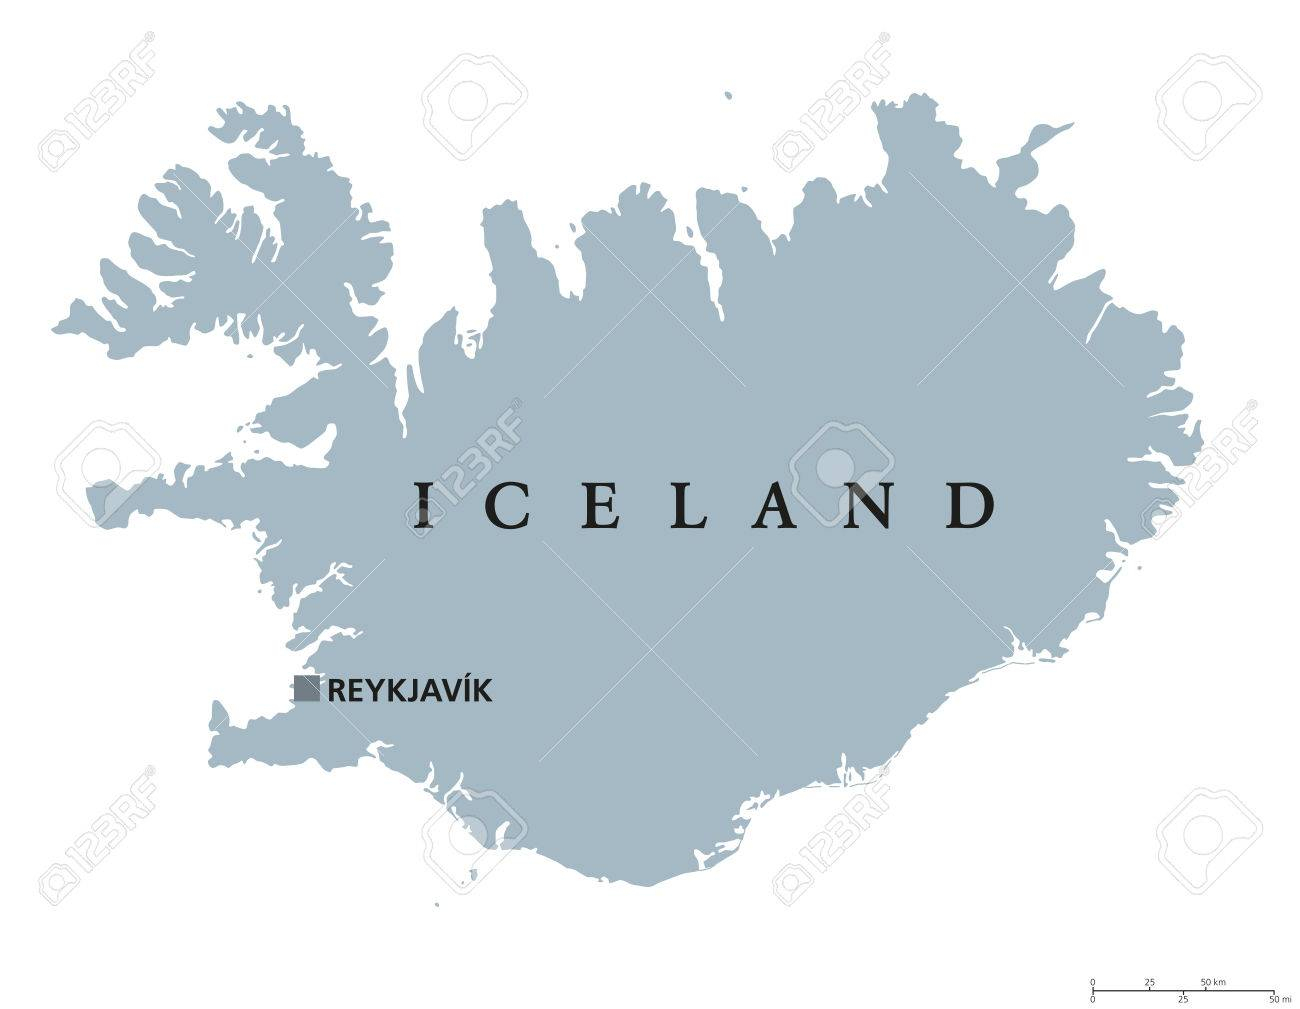 Carte Politique Islande Capitale Reykjavik. République Et Pays Insulaire  Nordique En Europe Et L'océan Atlantique Nord. Illustration Gris Avec destiné Capitale Europe Carte